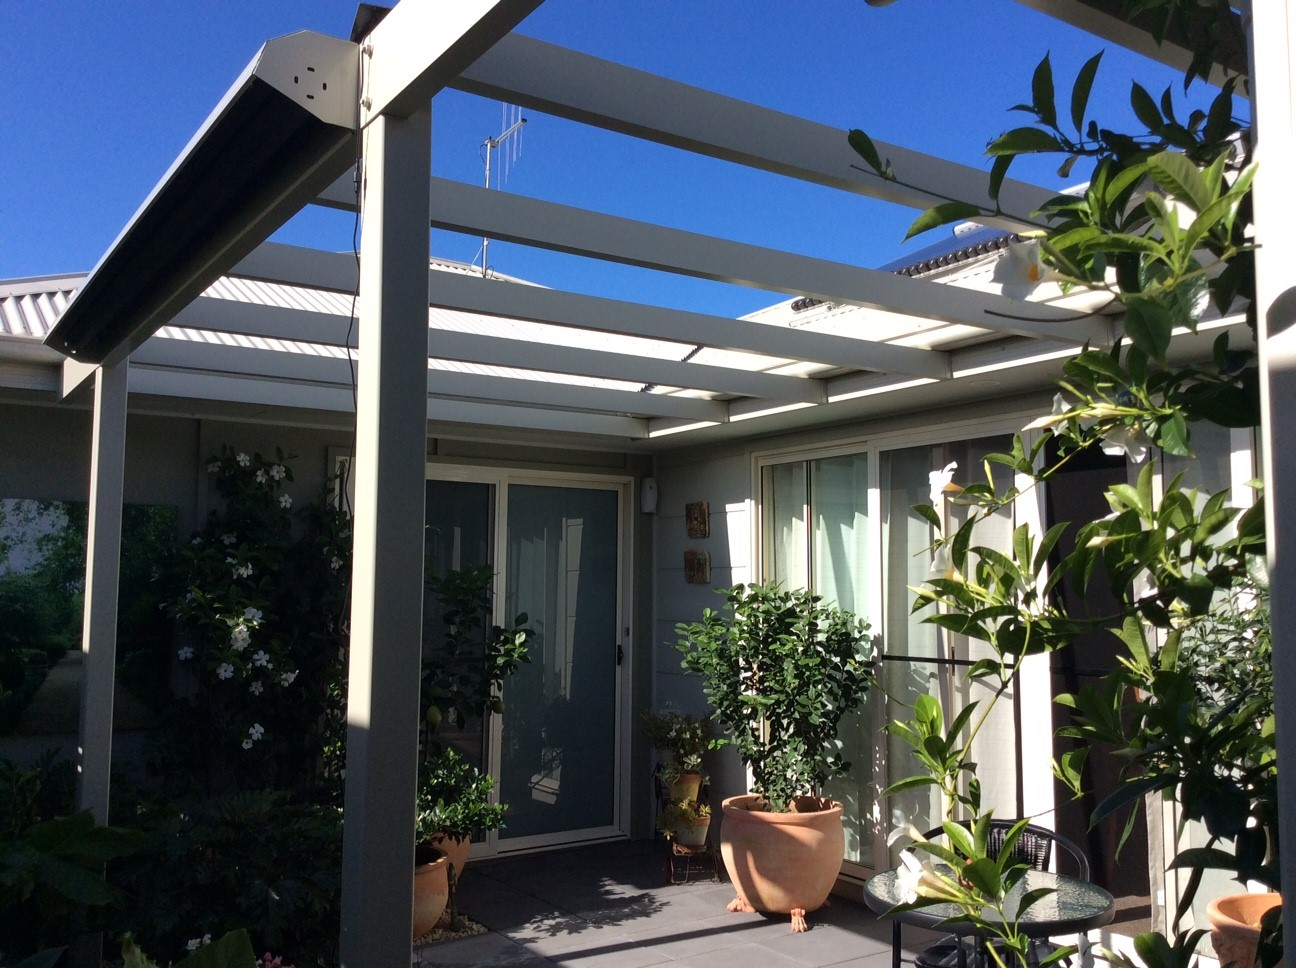 Pergolas - For your outdoor space